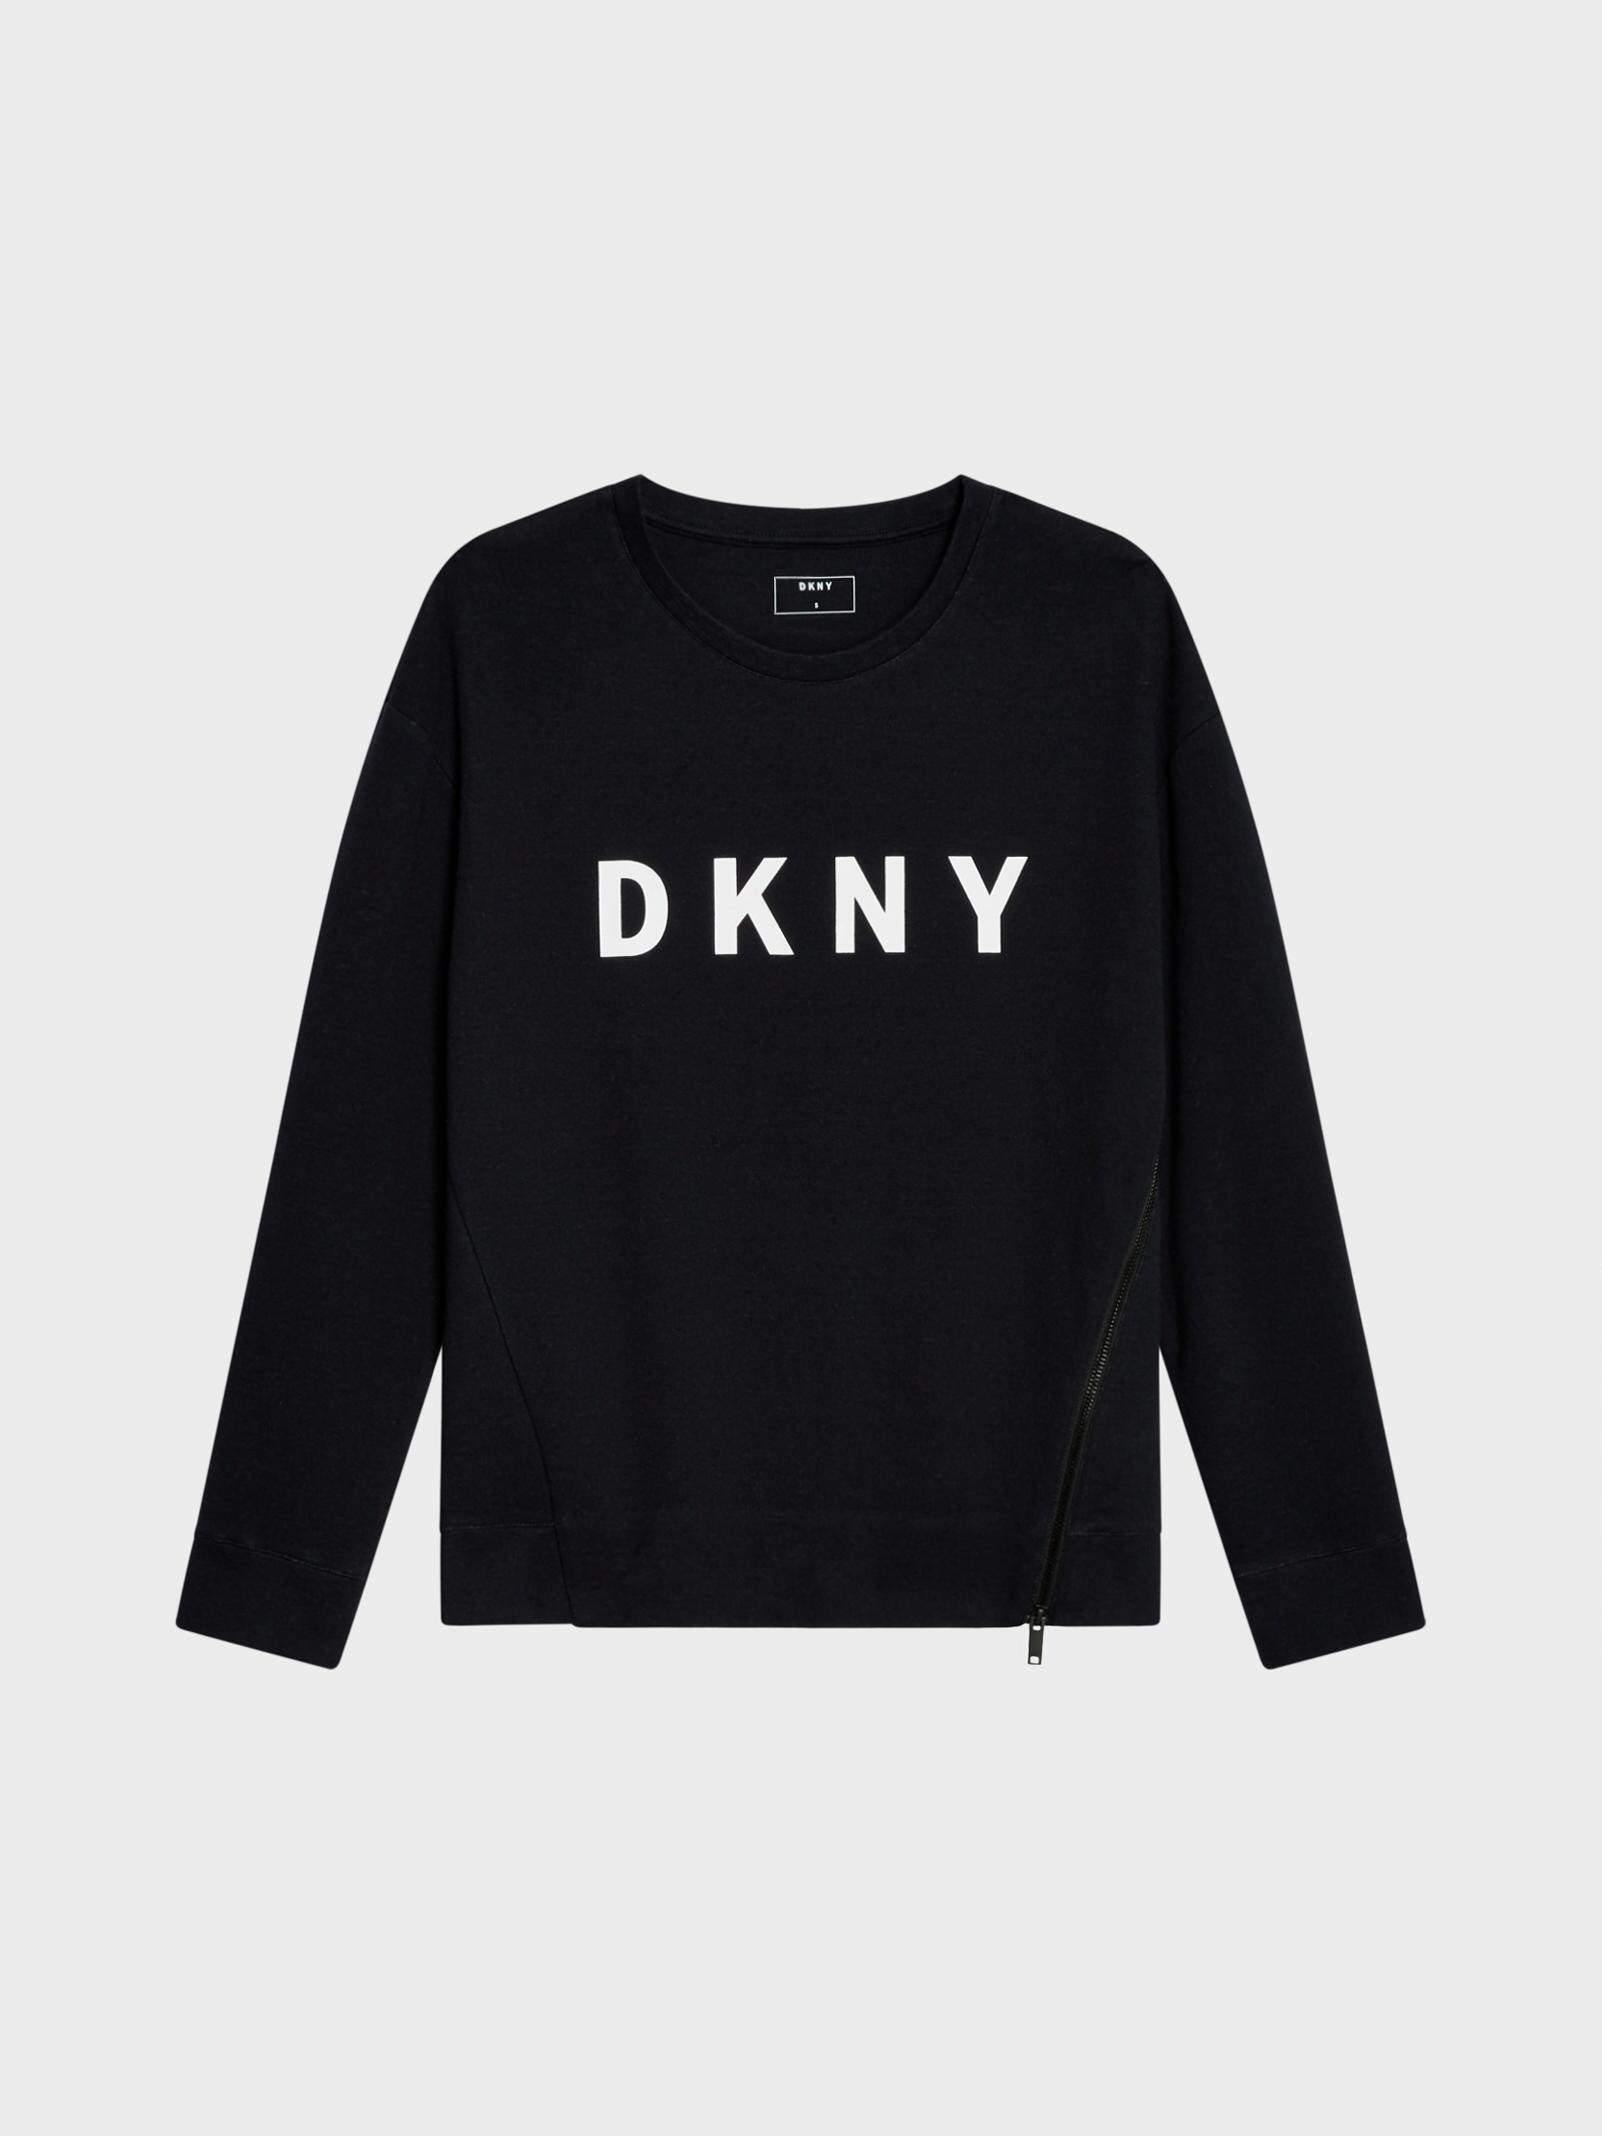 DKNY front logo sweatshirt Outlet Fashion Style Free Shipping 100% Guaranteed Free Shipping Exclusive Cheap Purchase YS5ilXwv